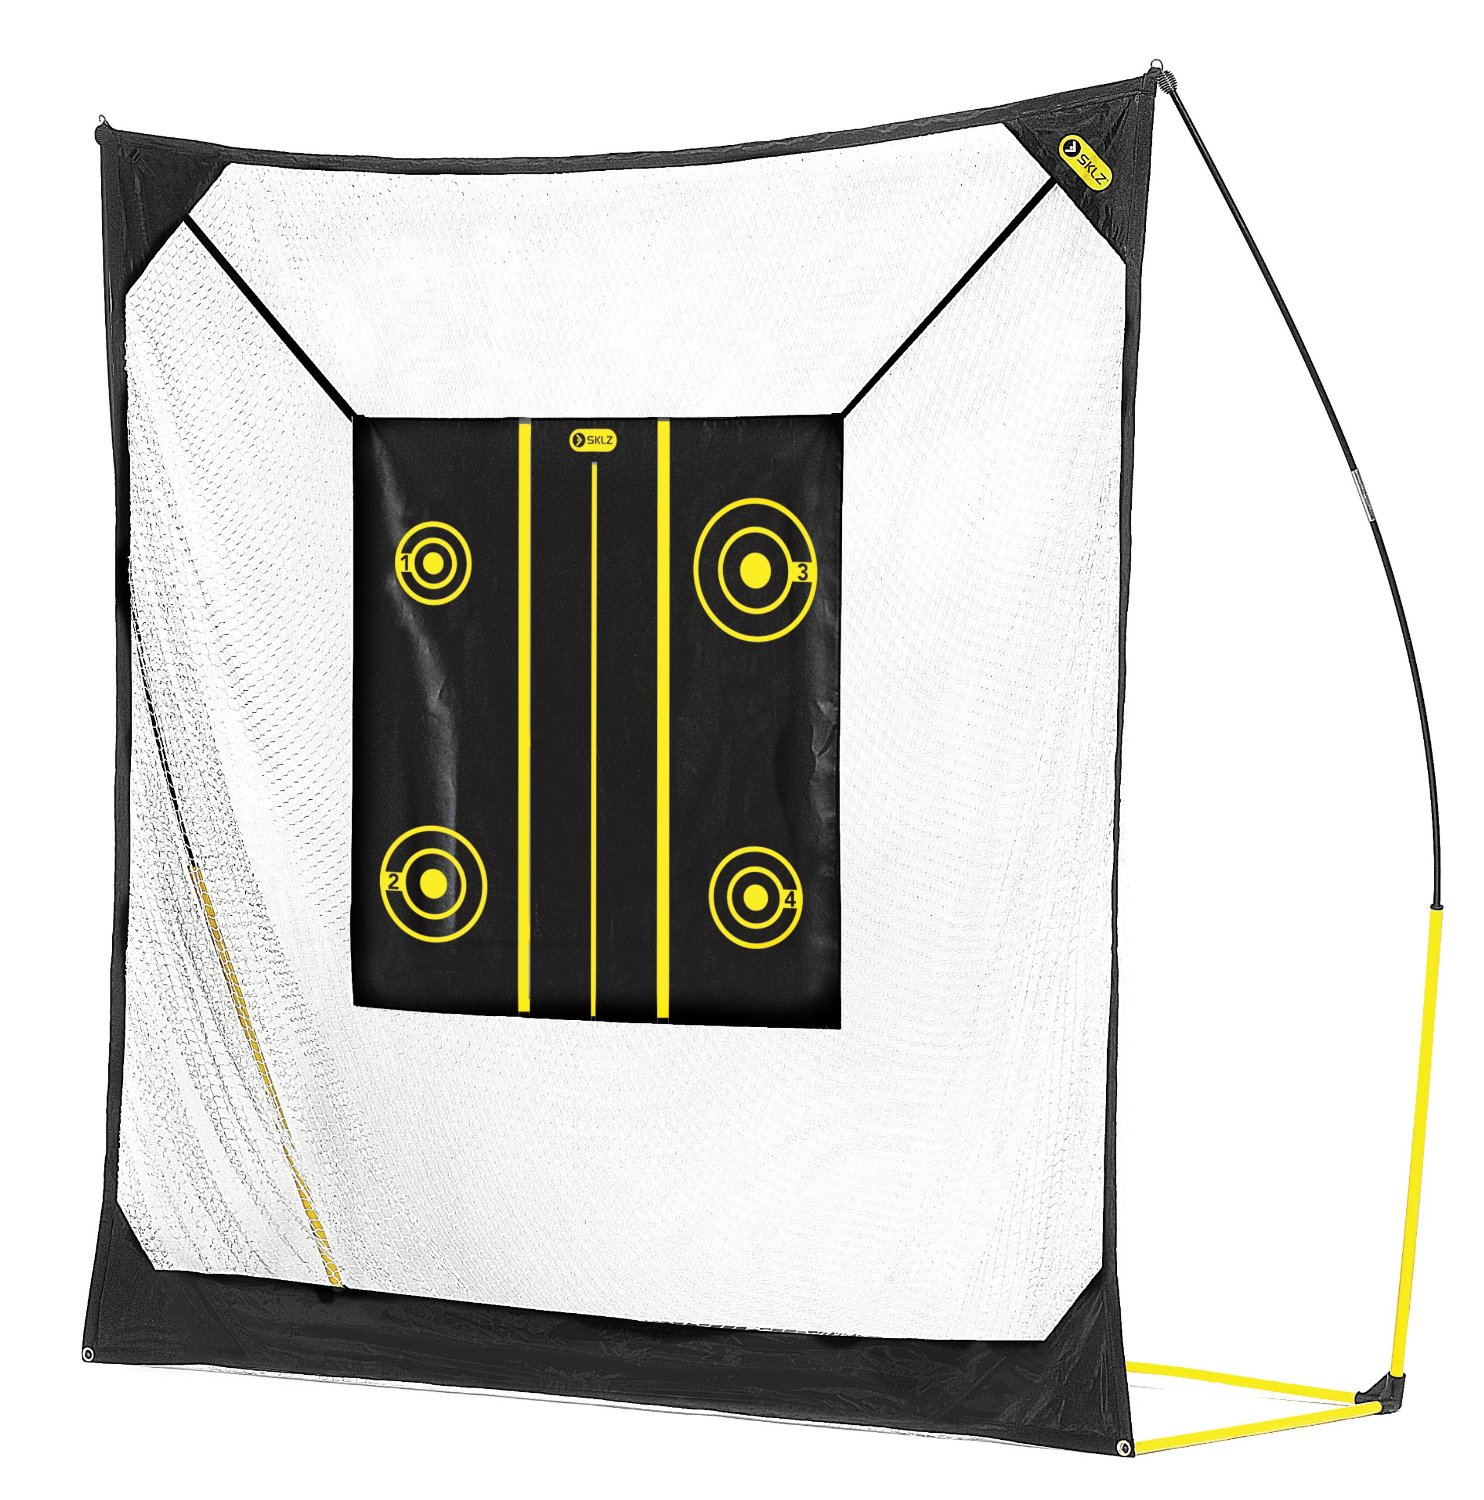 SKLZ Quickster Golf Chipping Net with Target